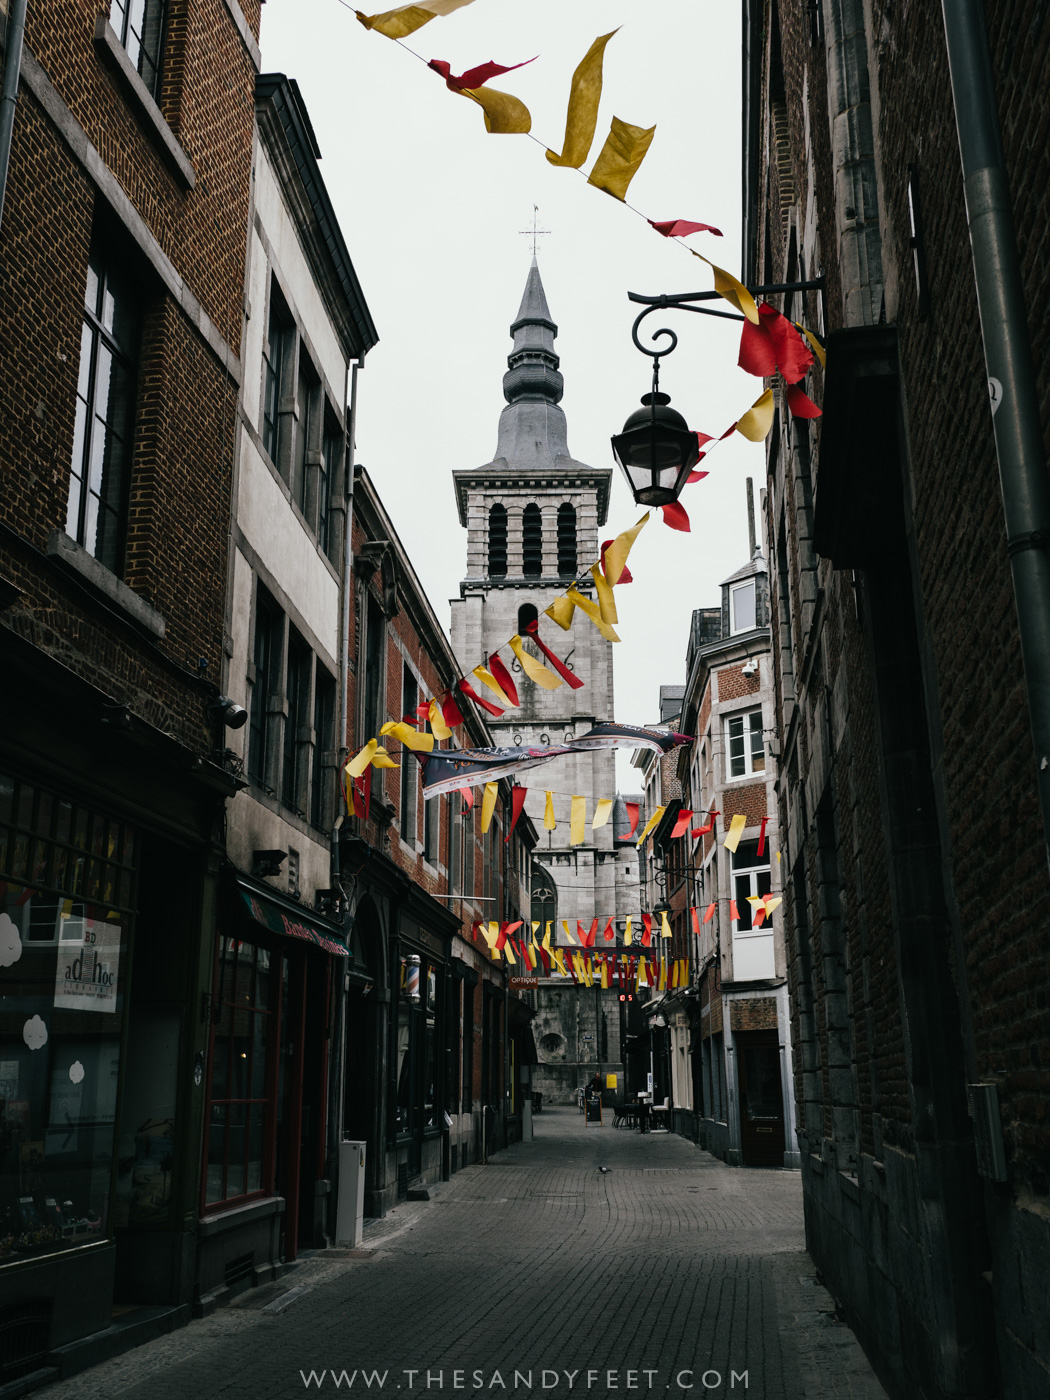 Explore the old town of Namur | A perfect weekend itinerary in the Namur region and one of the best things to do in Namur and Belgium's Wallonia Region.